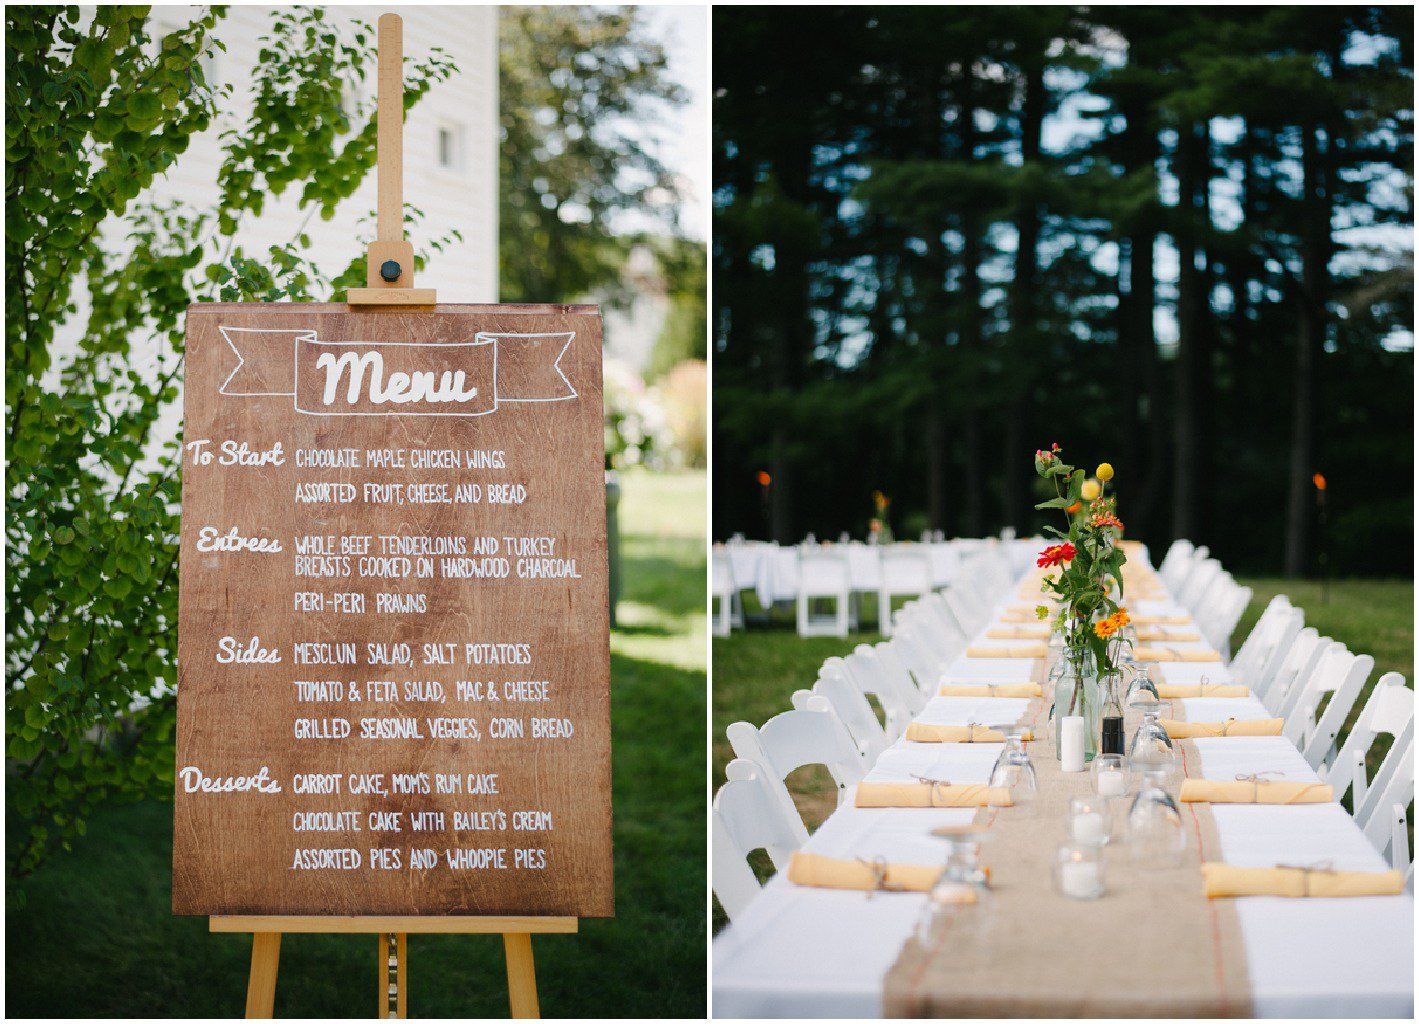 Backyard Weddings On A Budget White Salmon Wines How To Decorate pertaining to Backyard Wedding Decorations